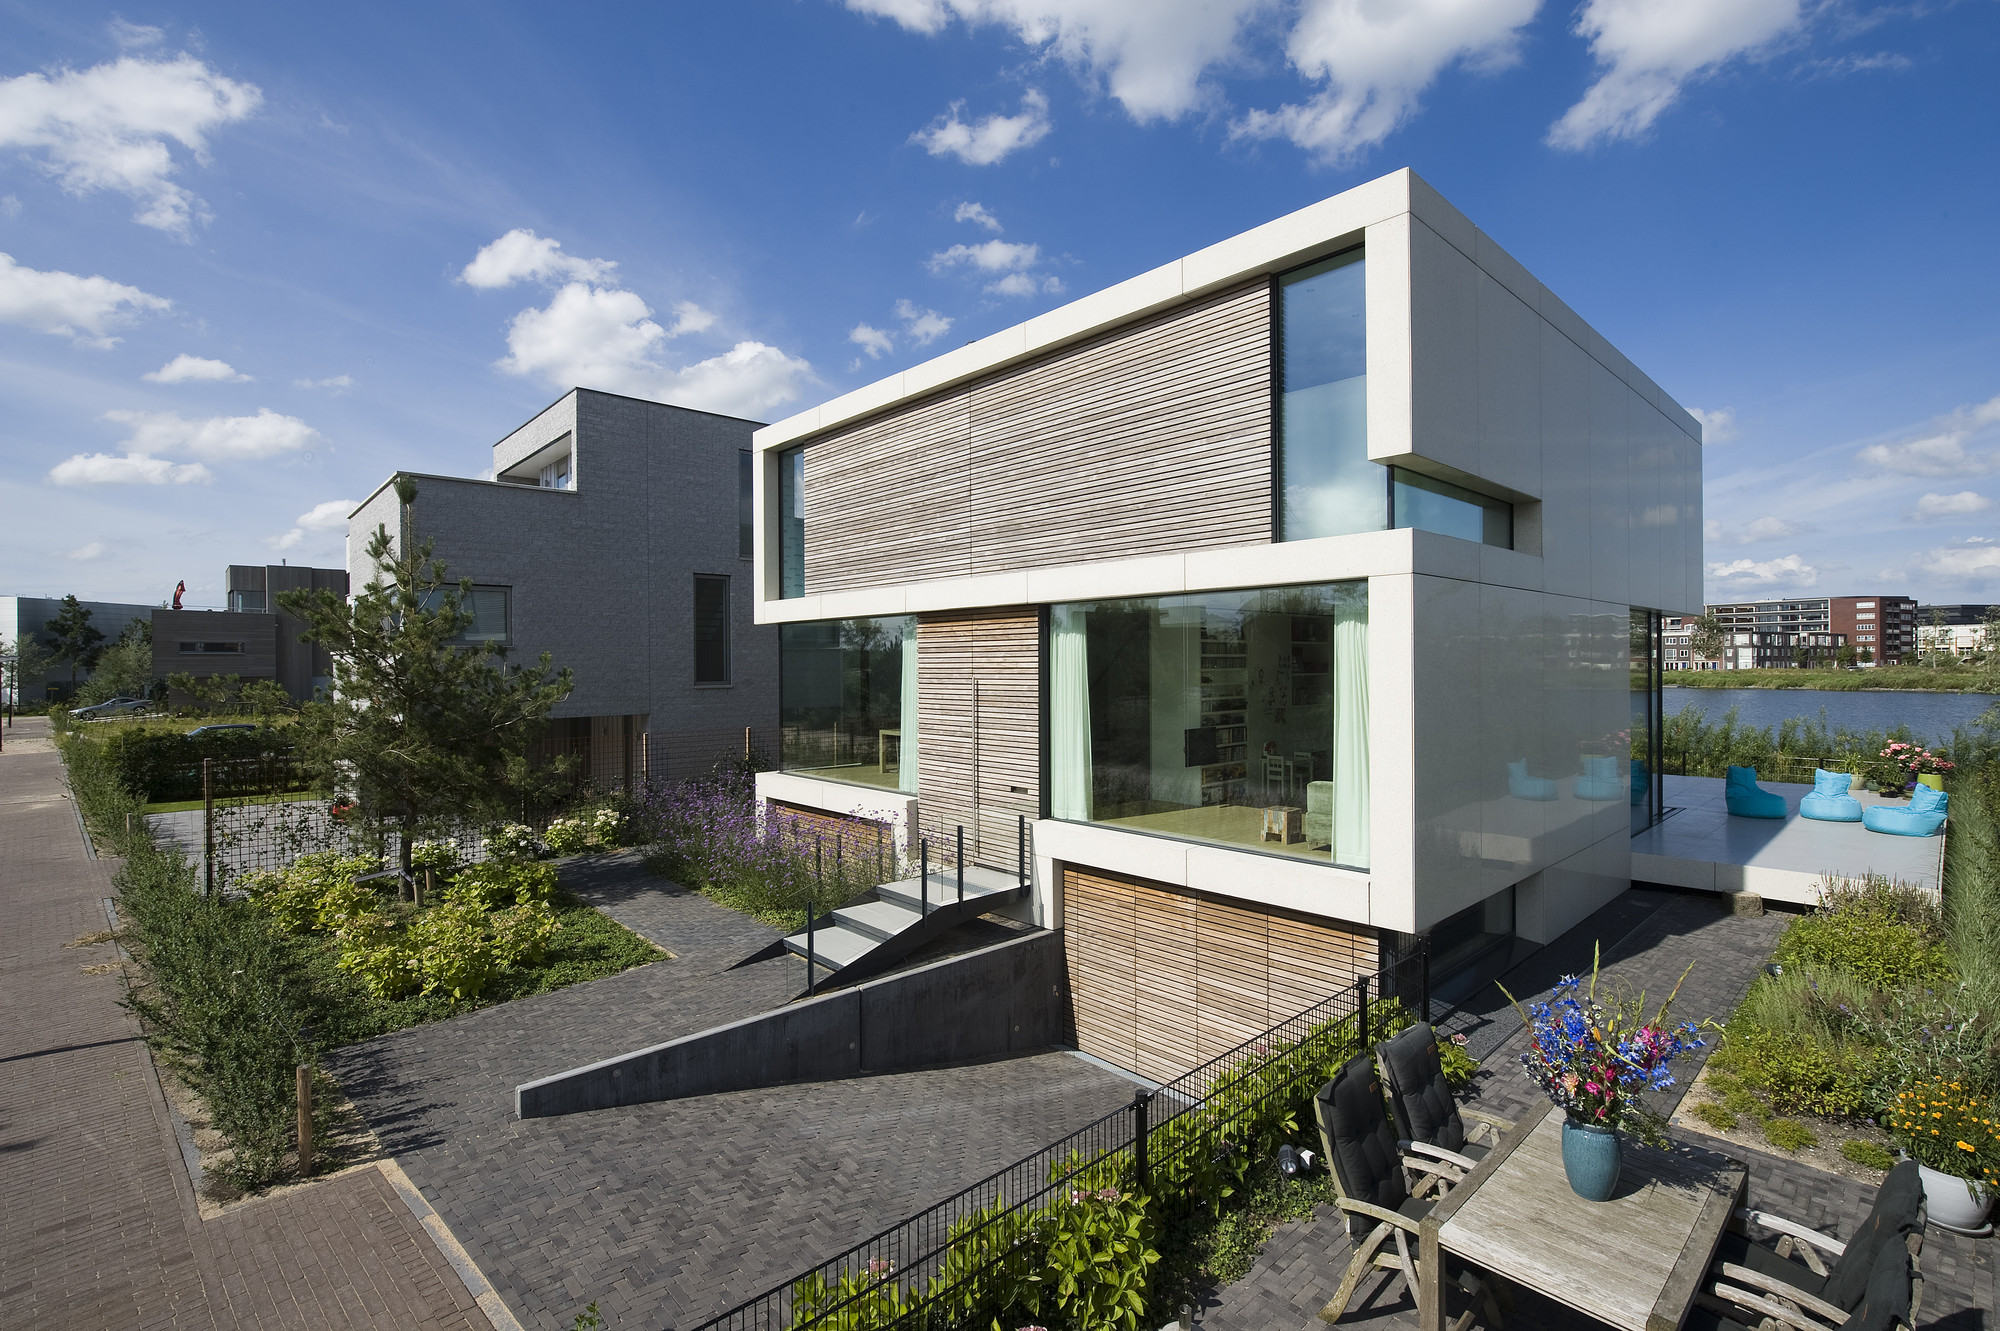 Villa s2 marc architects archdaily for Villas modernes architecture